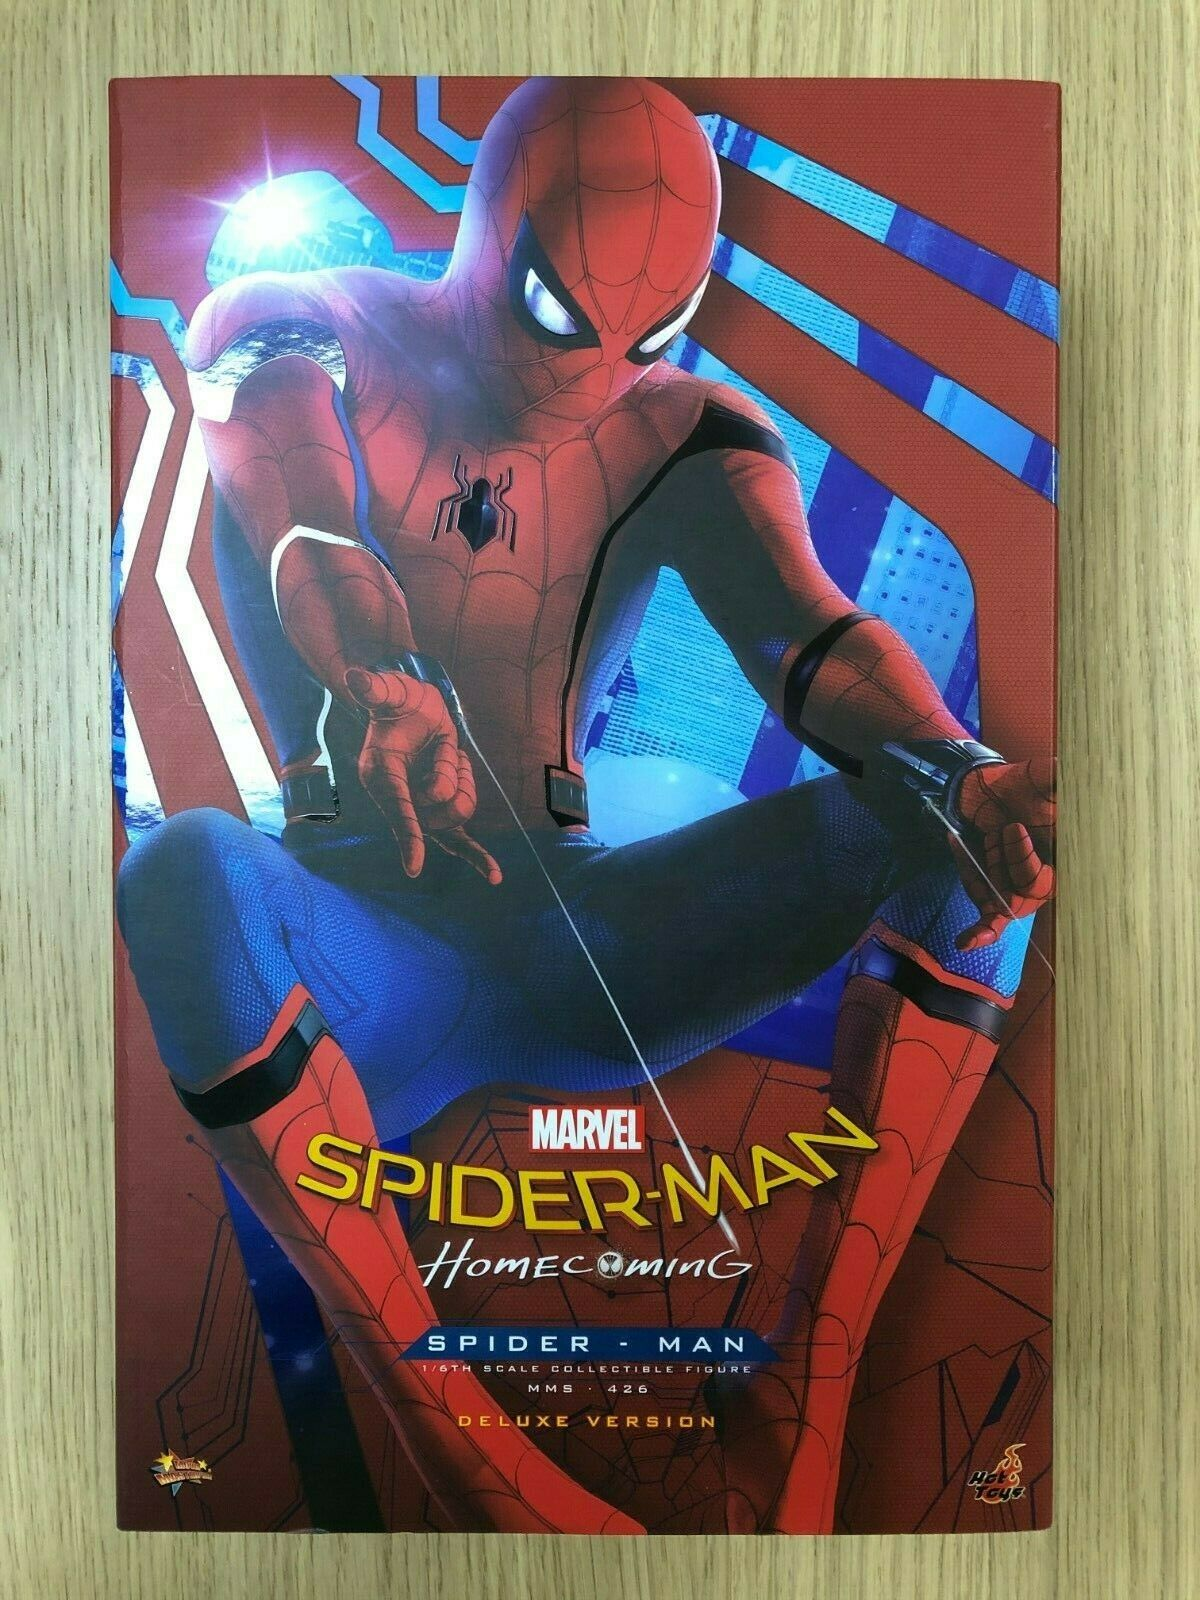 Hot Toys Spiderman Homecoming DELUXE MMS426 Web Attachments loose 1//6th scale